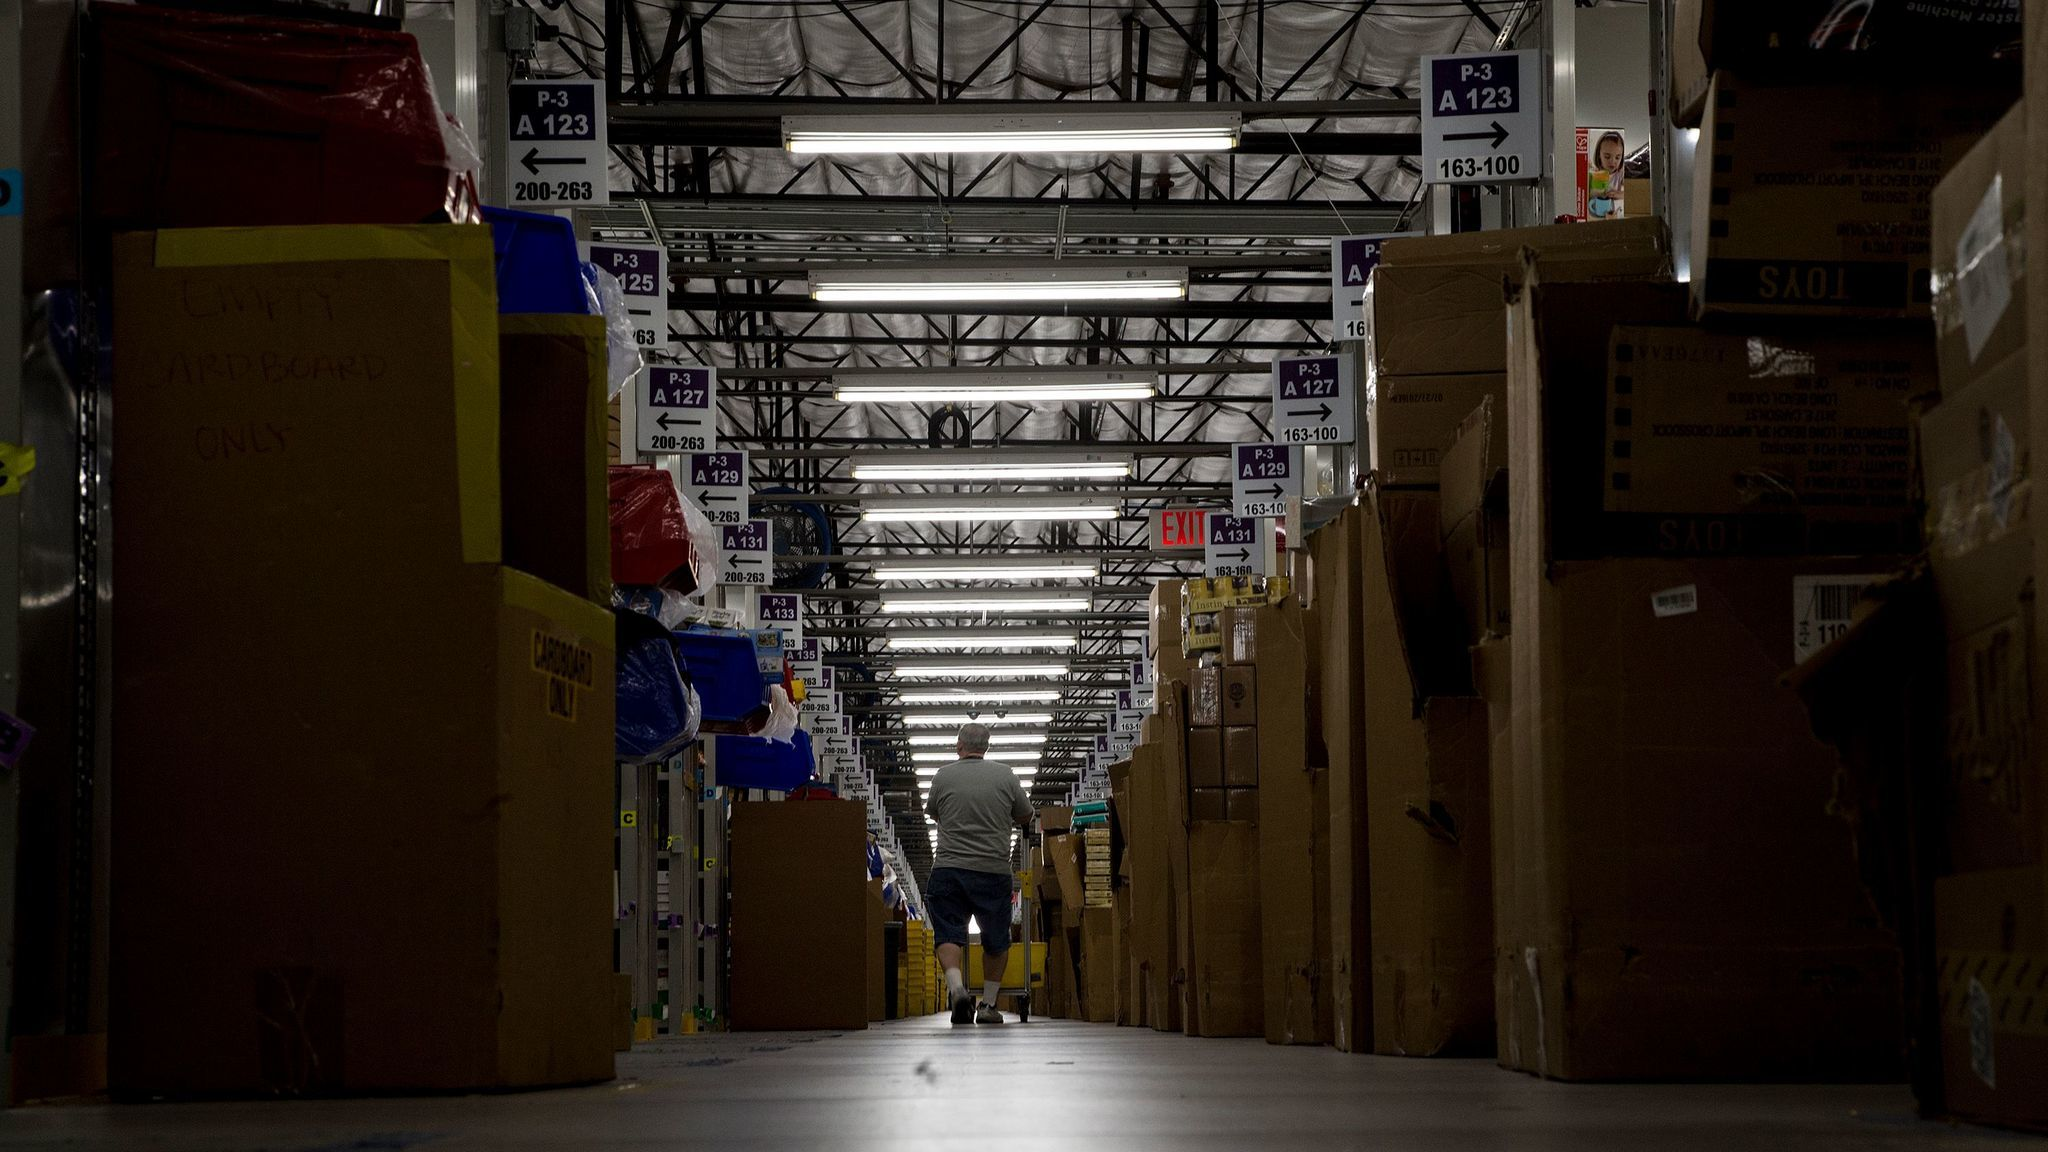 A worker collects items for customer orders on Cyber Monday at an Amazon warehouse in San Bernardino. (Gina Ferazzi / Los Angeles Times)